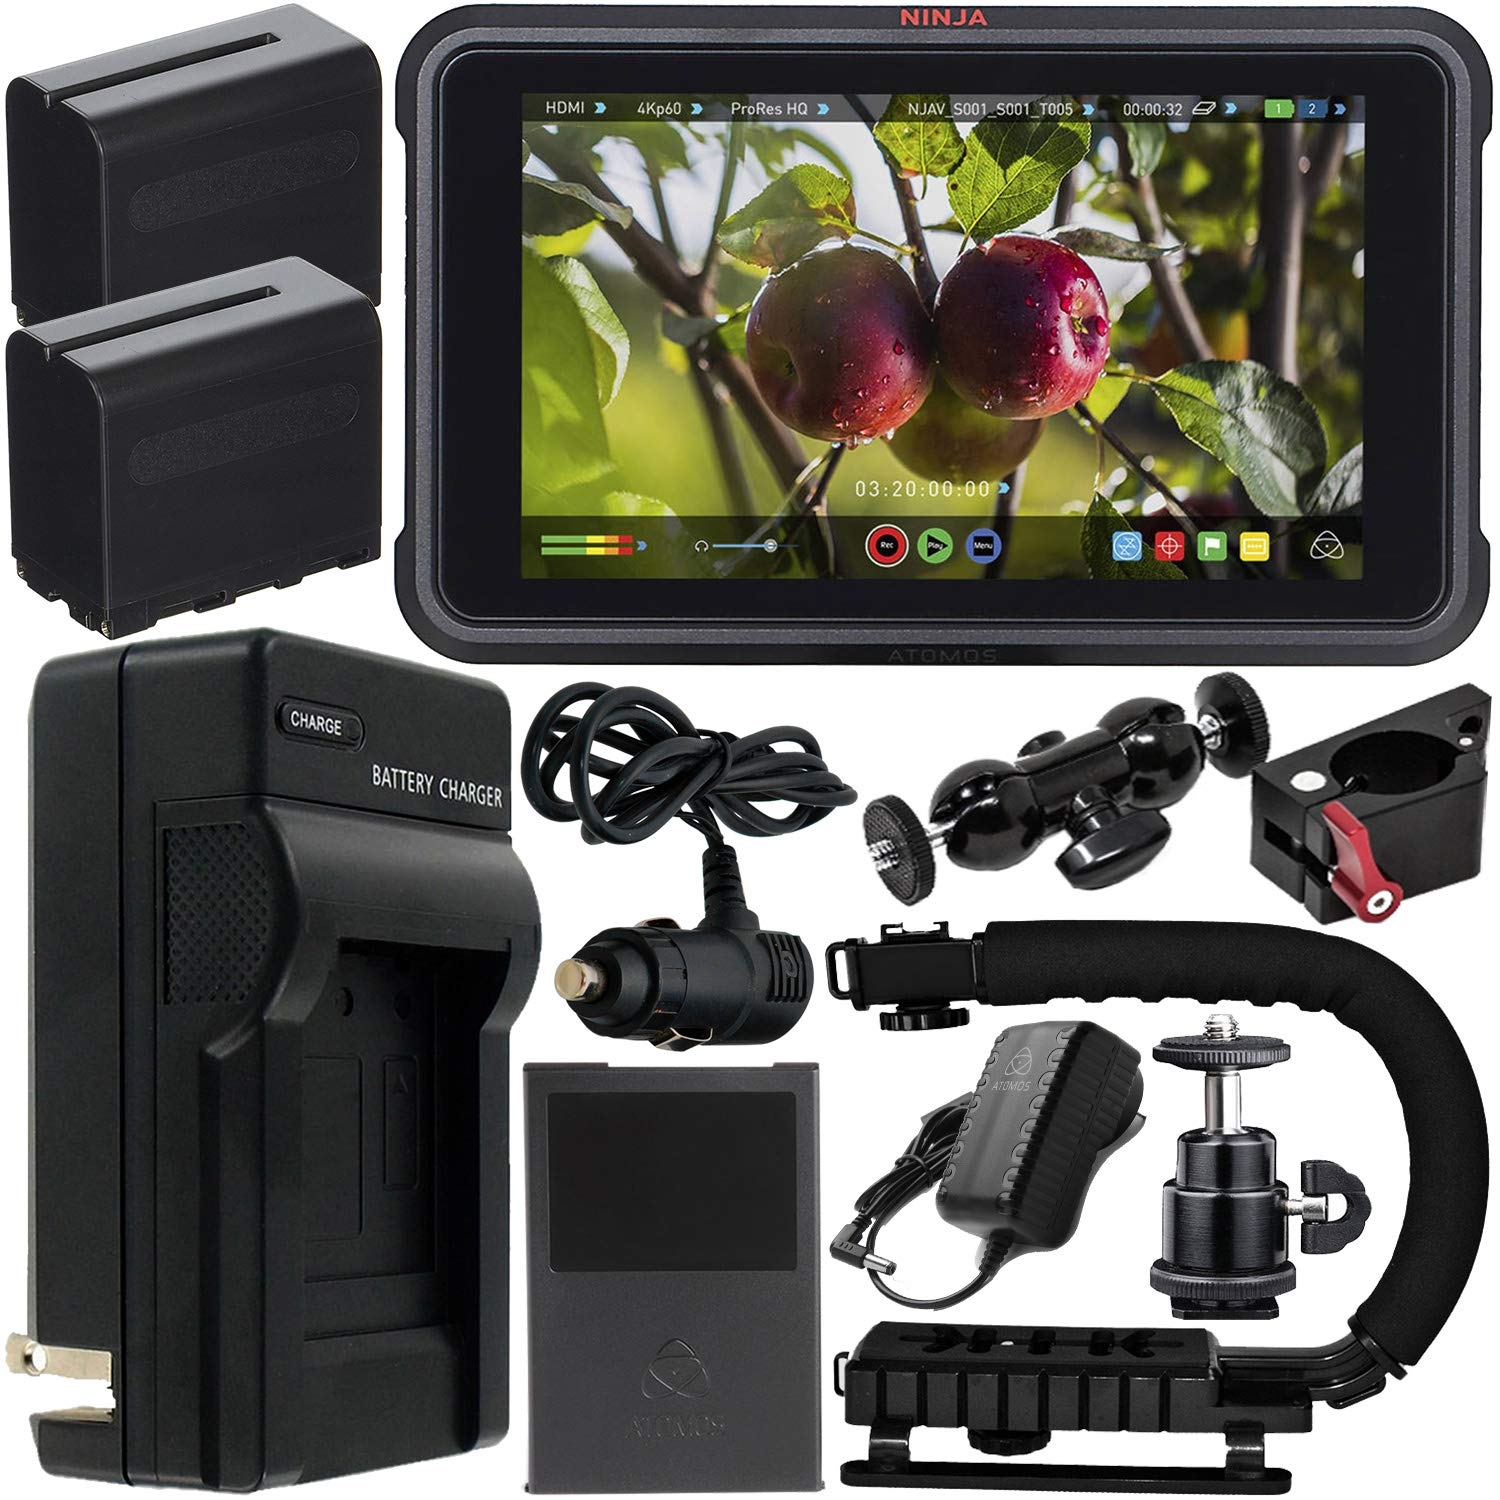 Atomos Ninja V 5'' 4K HDMI Recording Monitor with Power Bundle & Accessory Kit - Includes: 2x Extended Life NP-F975 Batteries with Charger, Action Grip Stabilizer, Rotating Monitor Mount & MORE by Atomos